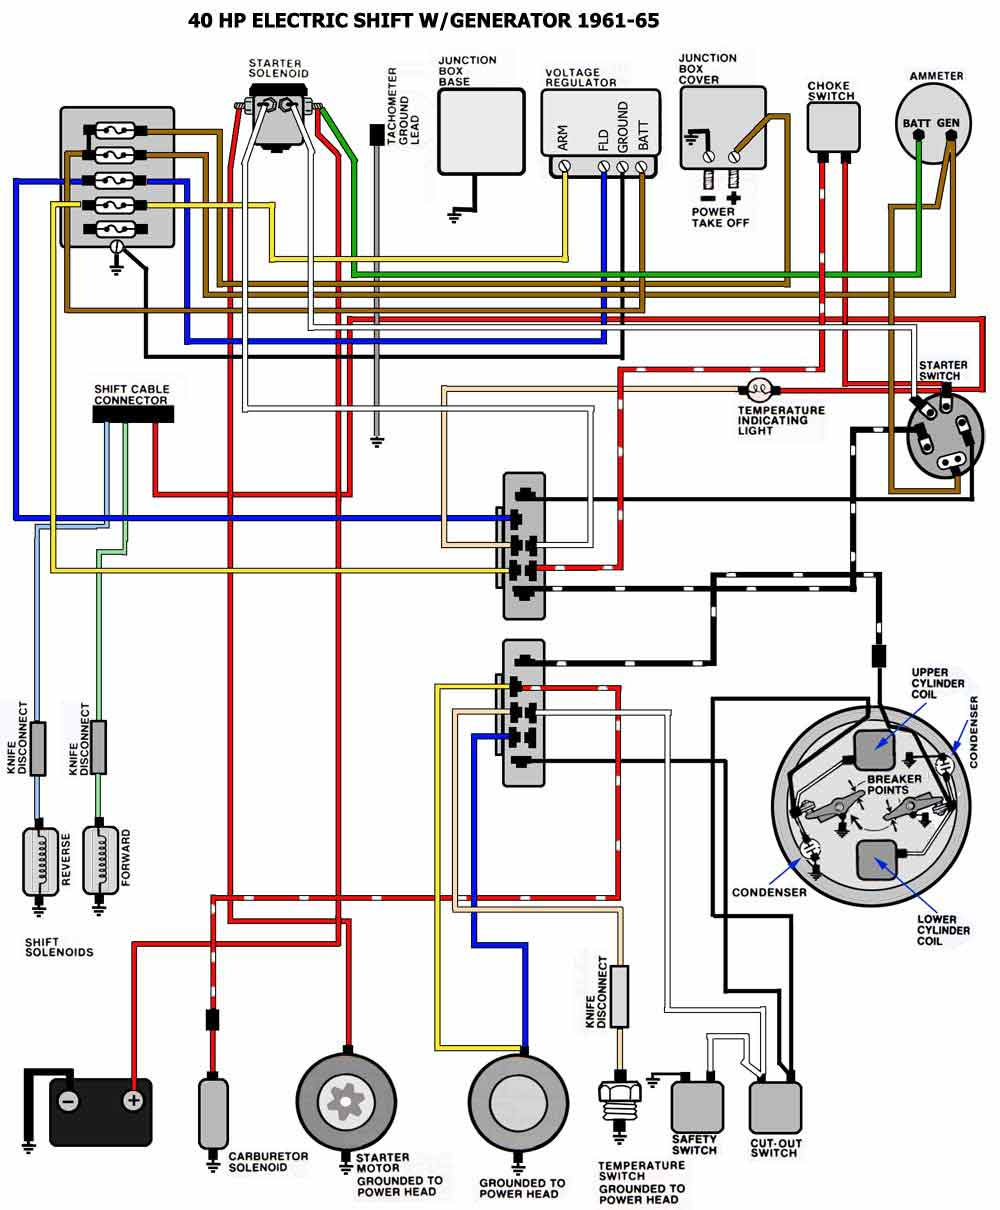 evinrude wiring diagrams 40 hp wiring diagram 40 hp mercury outboard